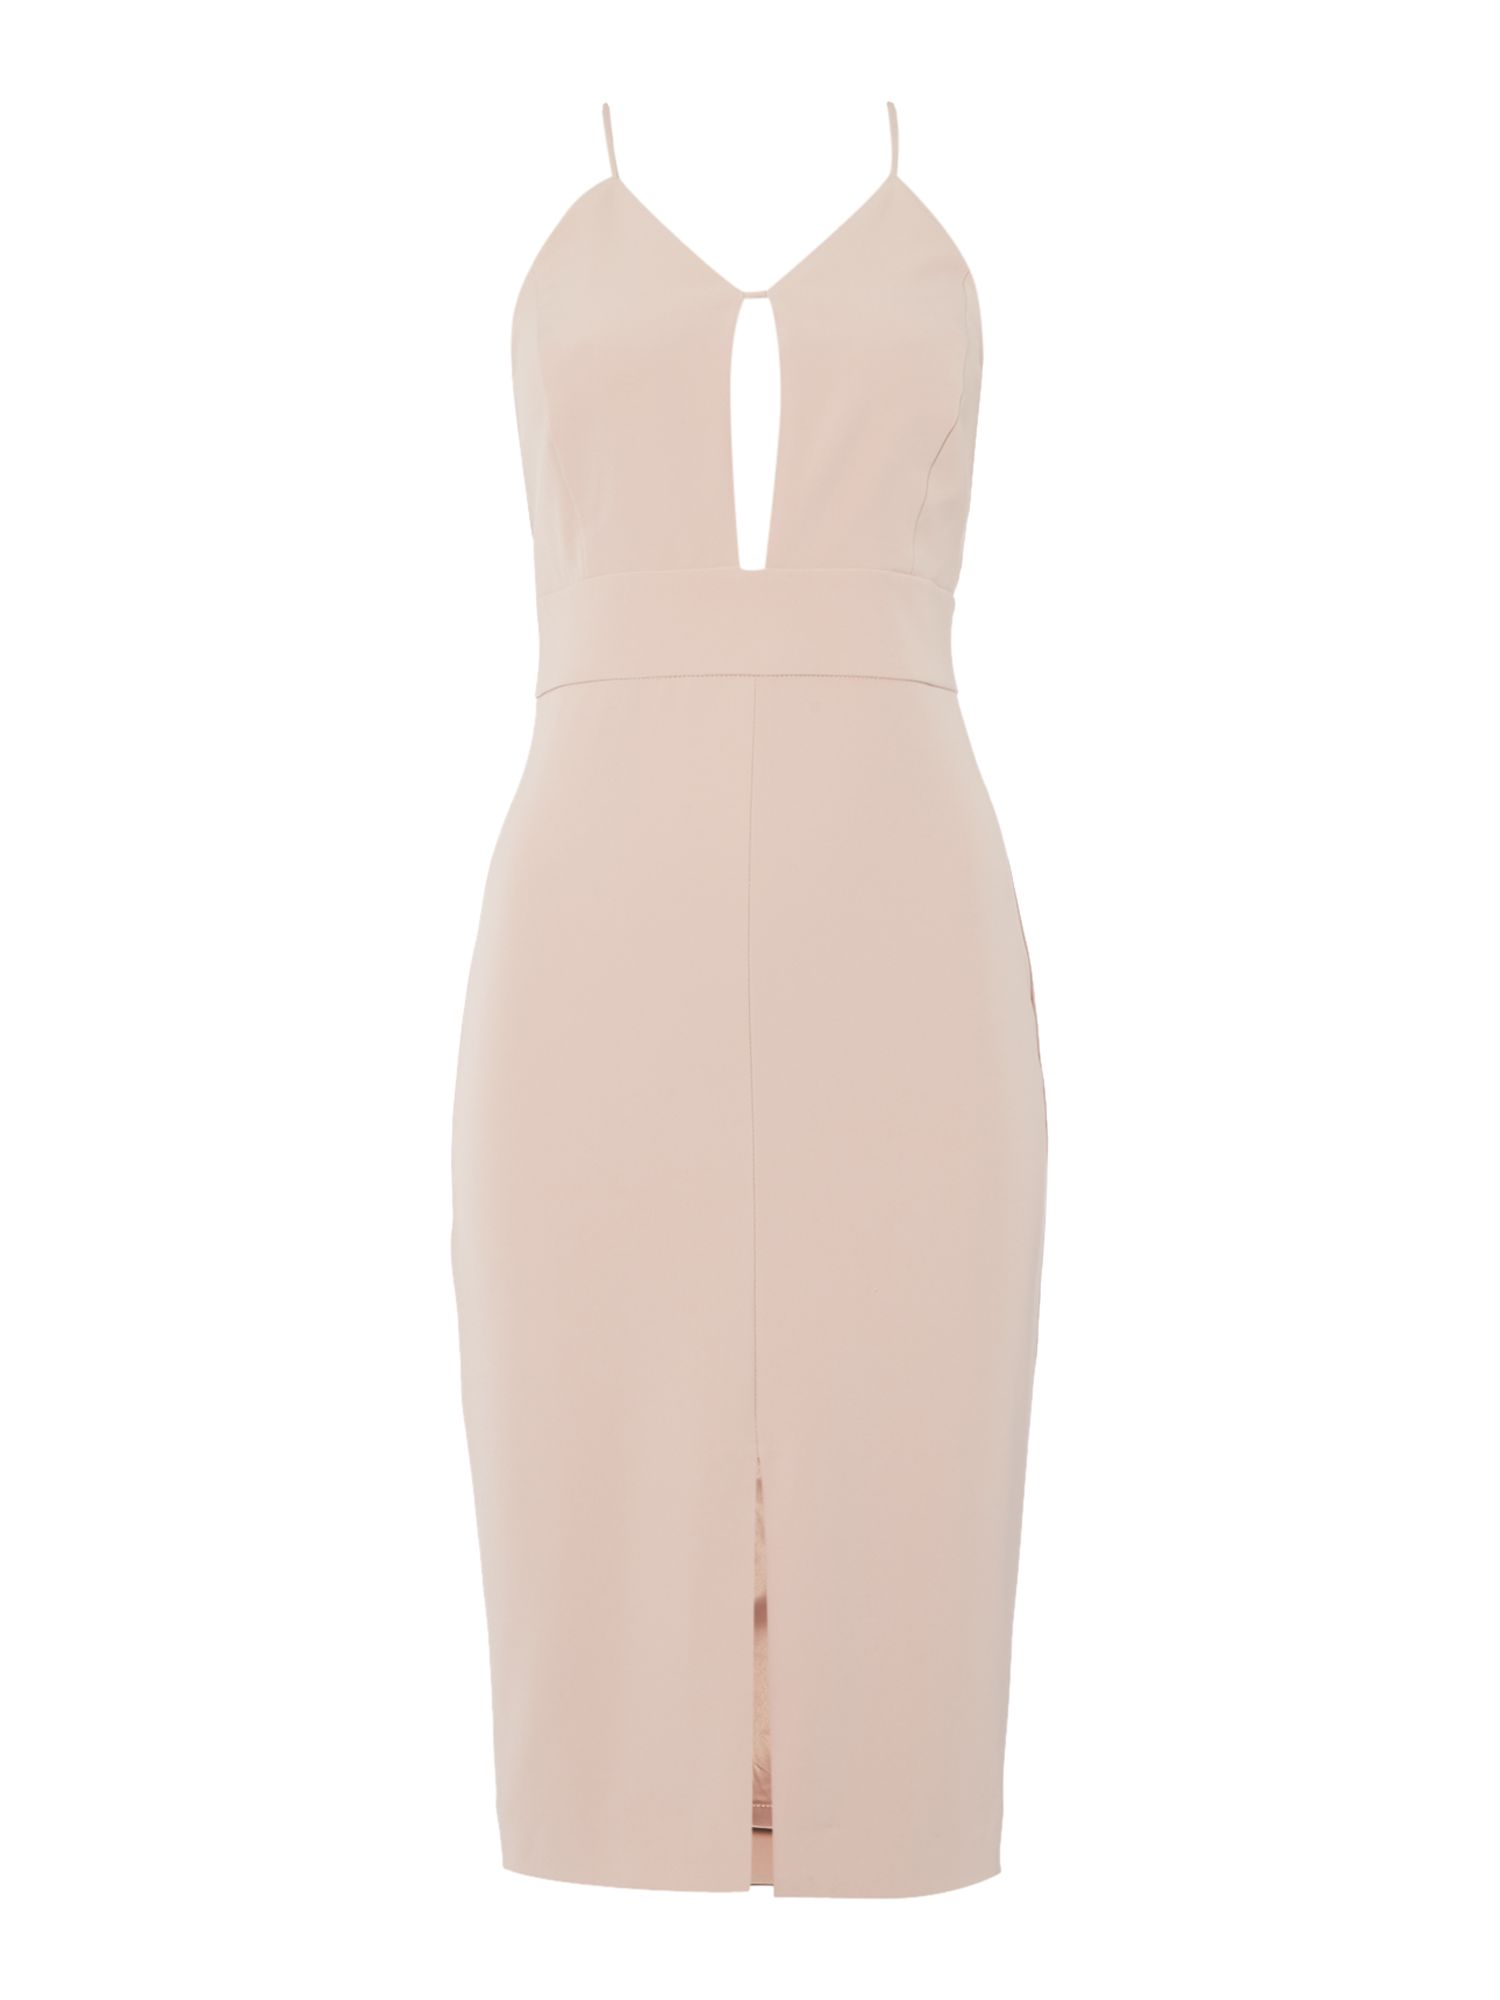 Bardot Sleeveless V Neck Cut Out Chest Bodycon Dress, Nude